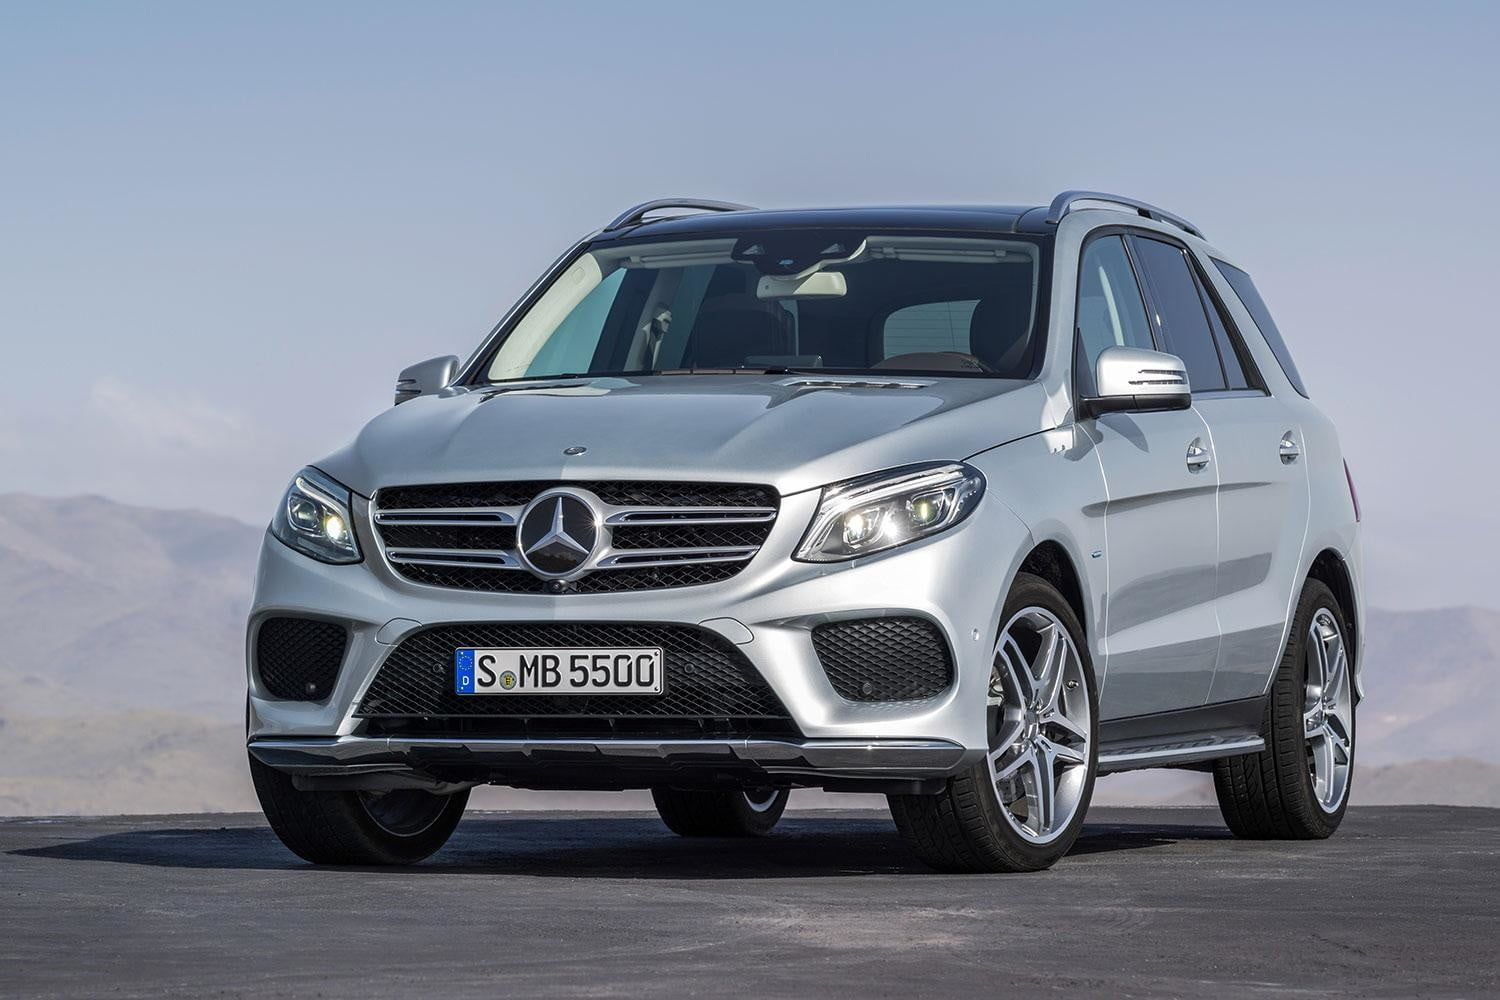 2016 mercedes benz gle specs pictures performance 5